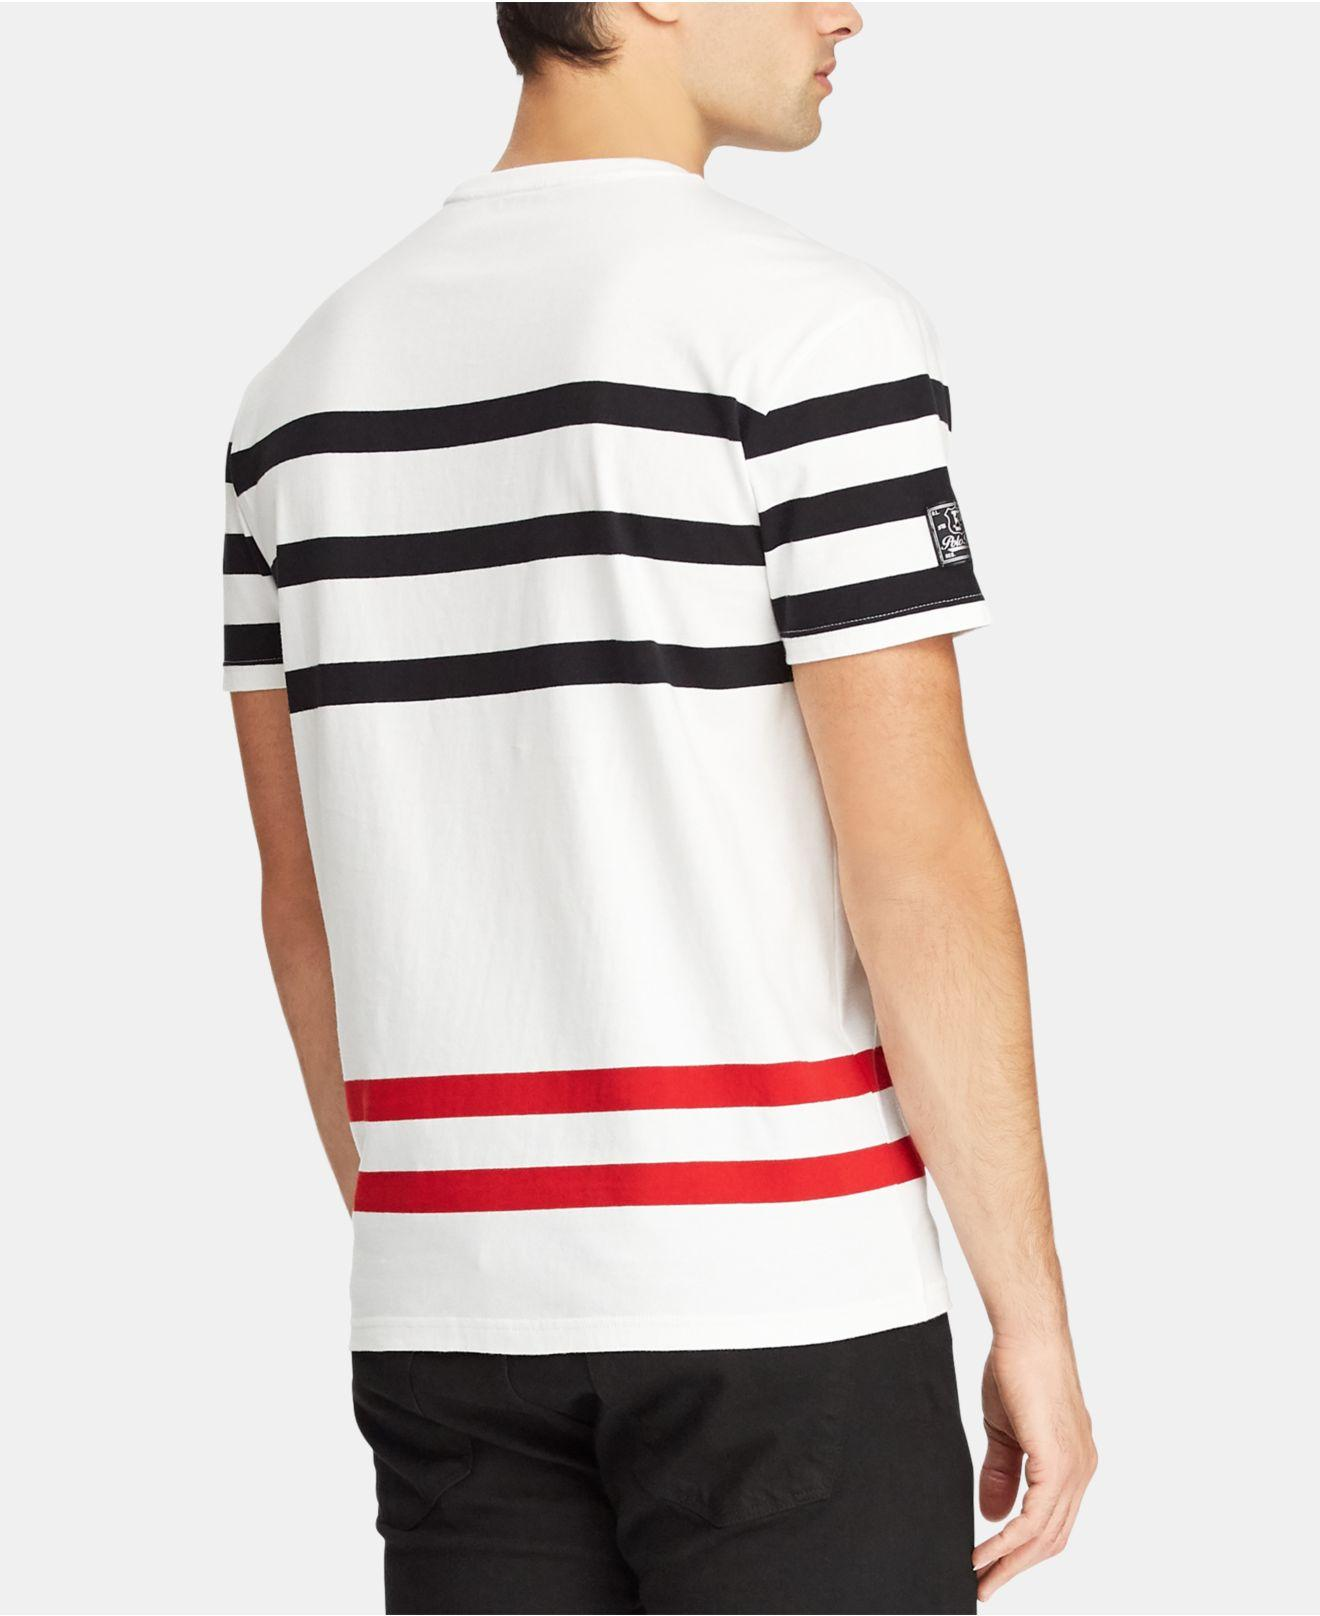 83055b0d88f764 Lyst - Polo Ralph Lauren Cotton Stripe Tee in White for Men - Save 51%